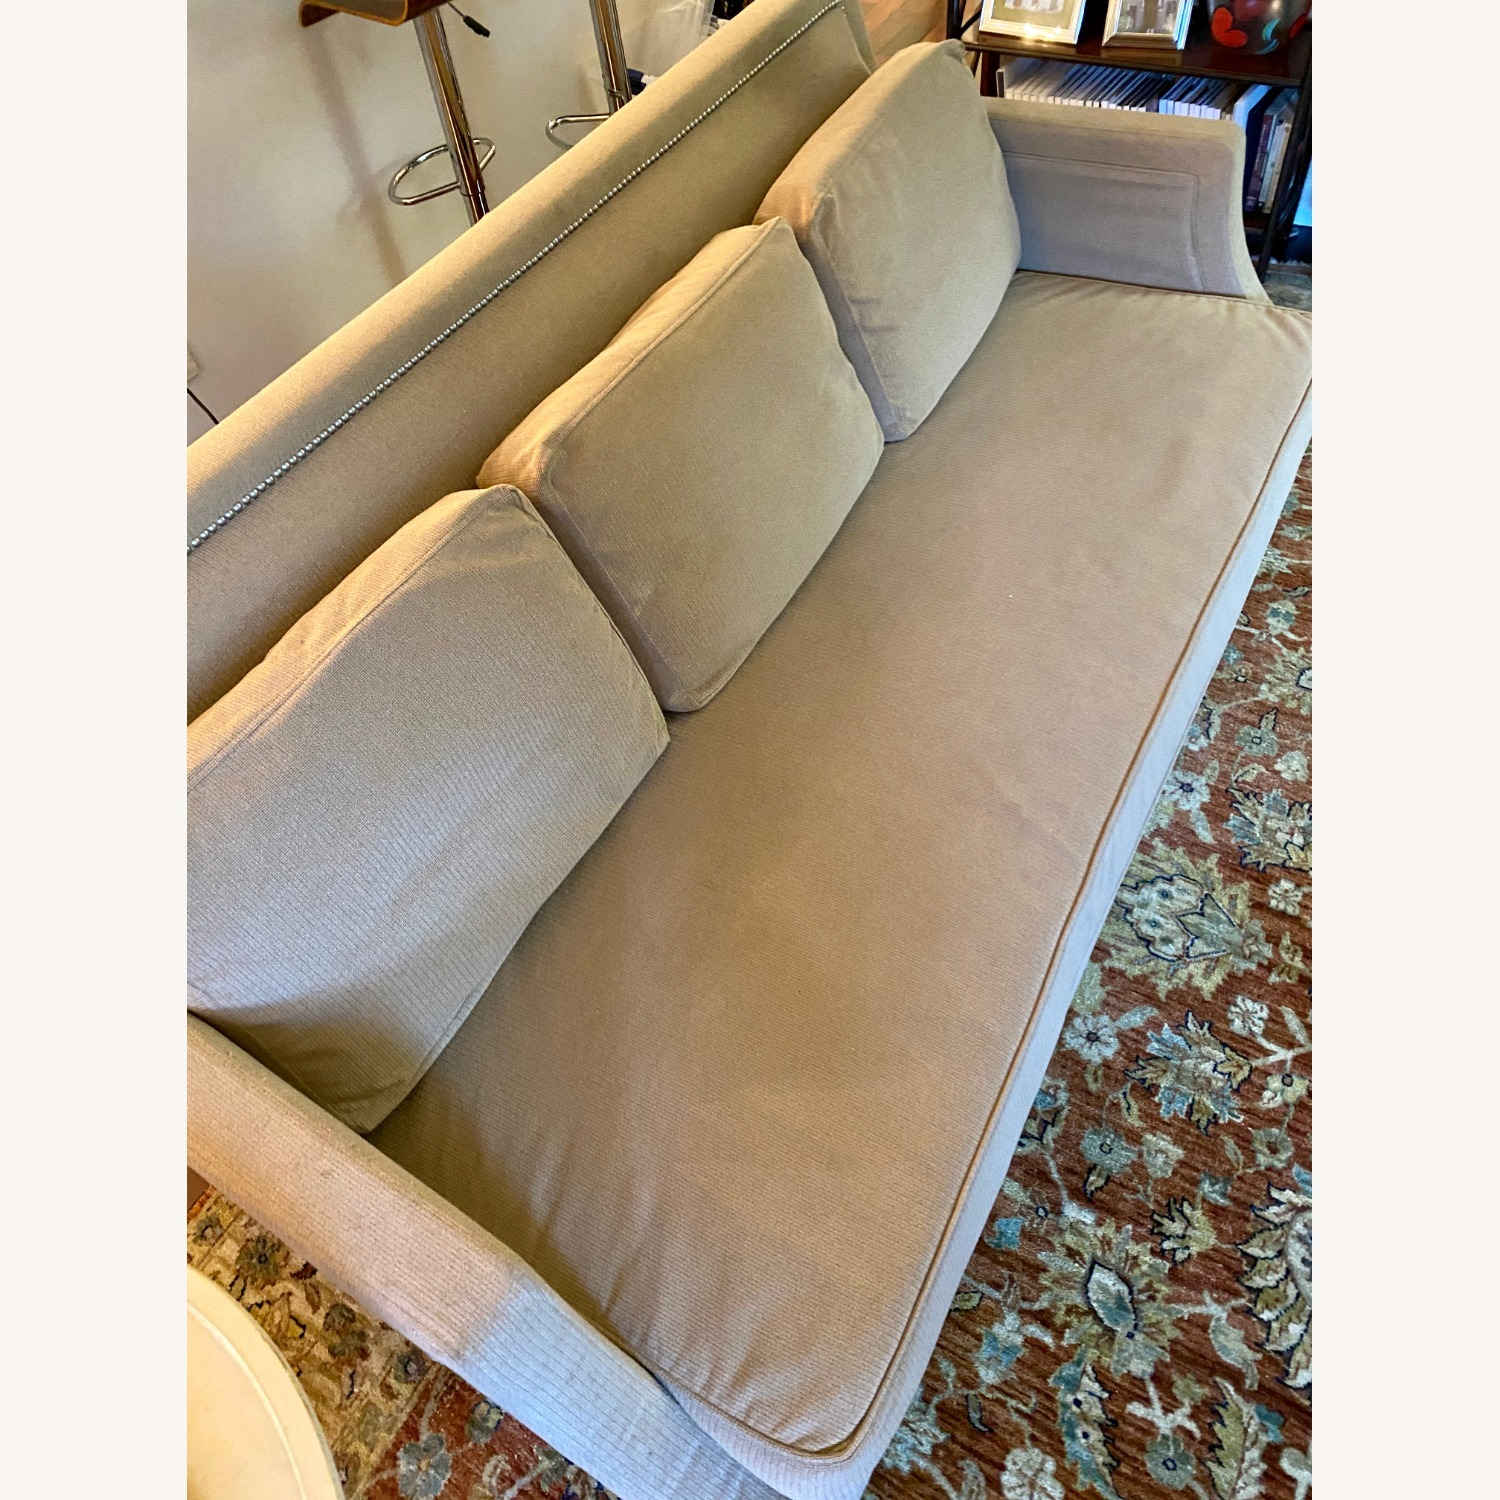 Robert Allen Design Cooper Sofa in Tan - image-2